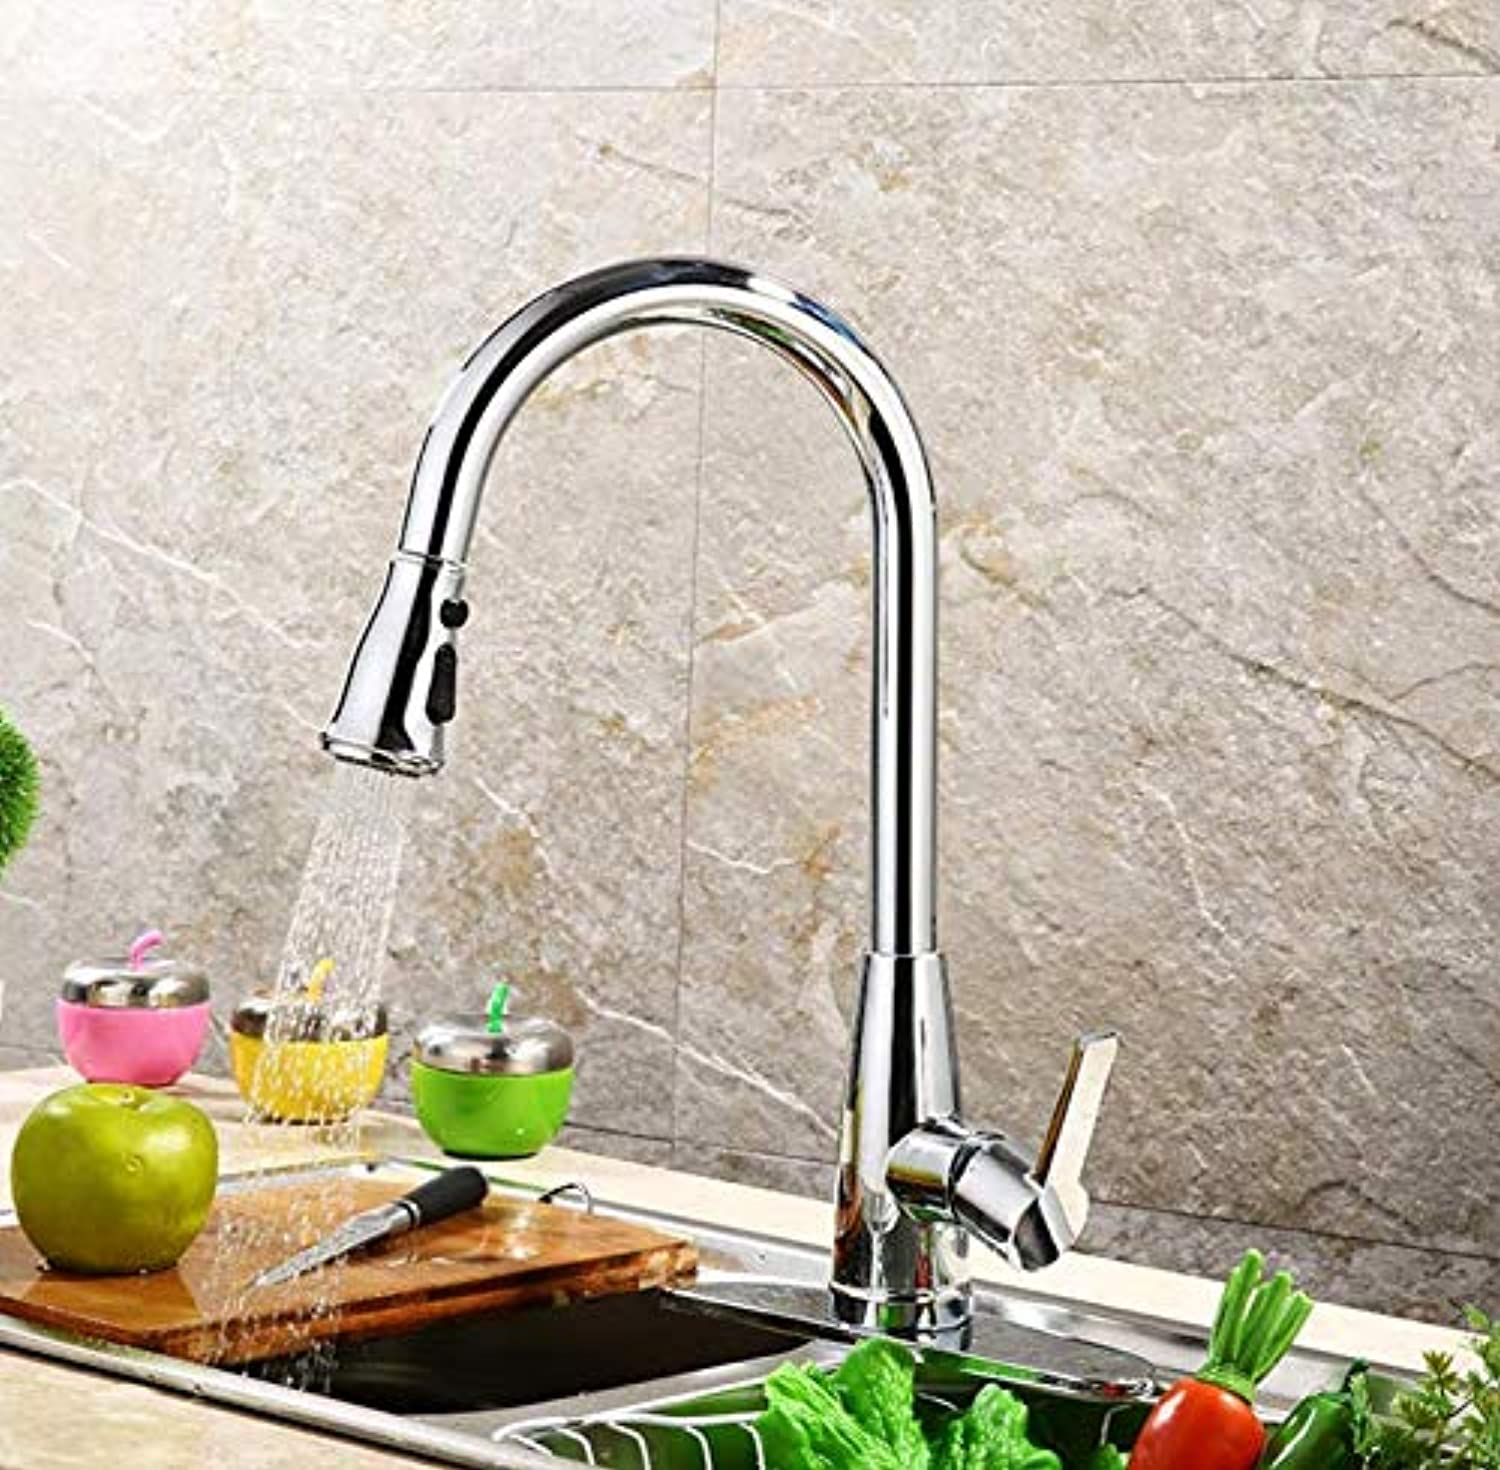 Water Taptaps Faucet Sink Faucet Into The Wall Bathroom Kitchen Mixer Faucet Kitchen Hot and Cold Faucet